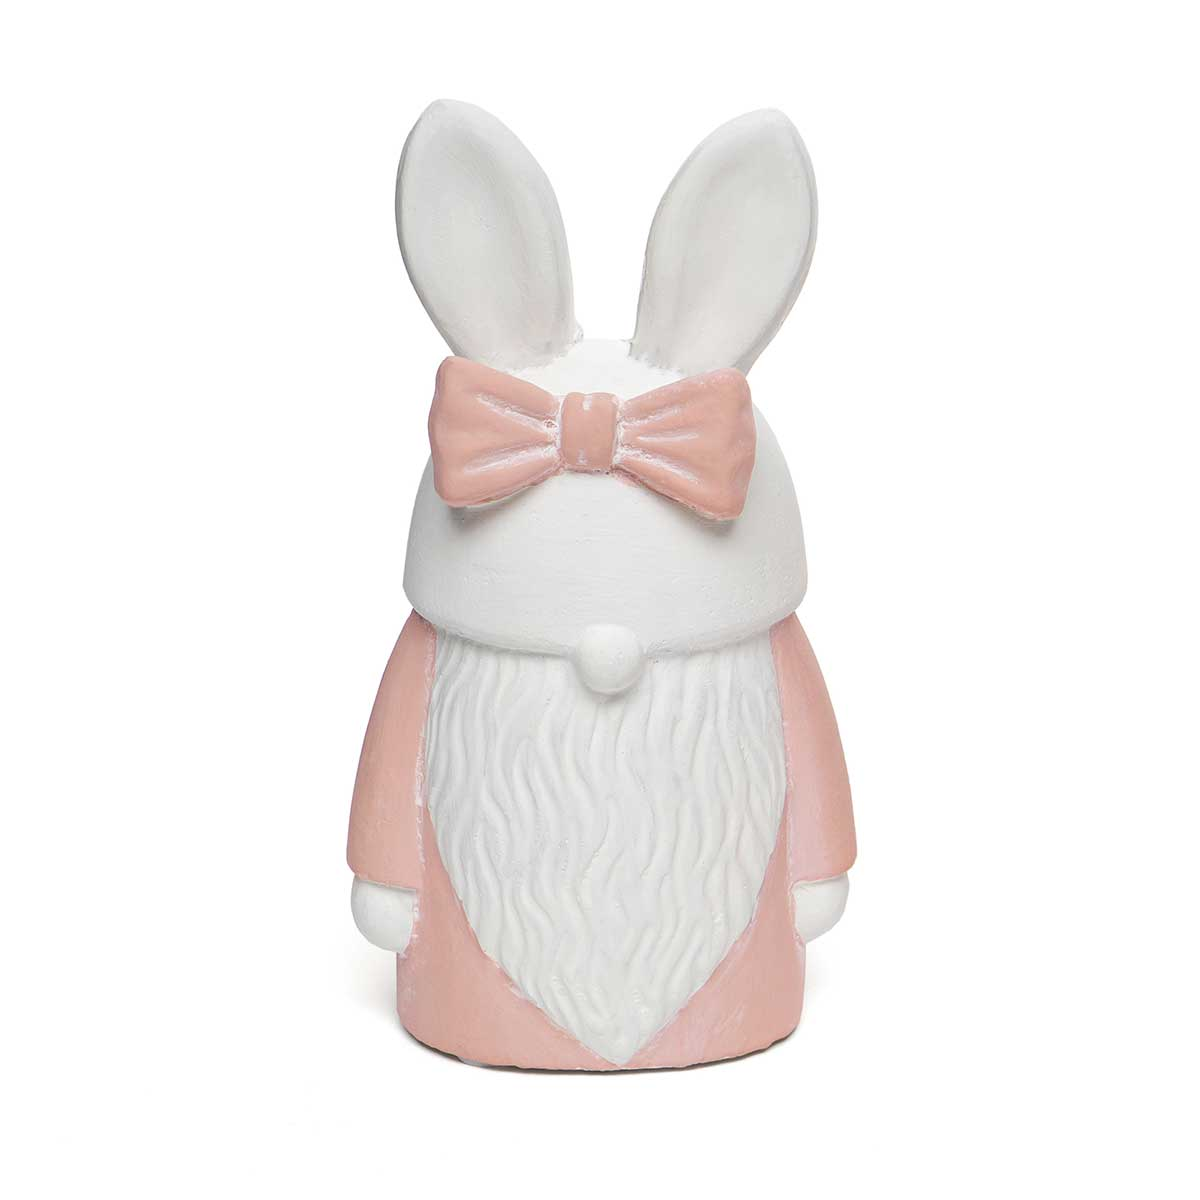 "BUNNY CONCRETE GNOME PINK WITH BOW SMALL 3.5""x4.75""x2.25"""